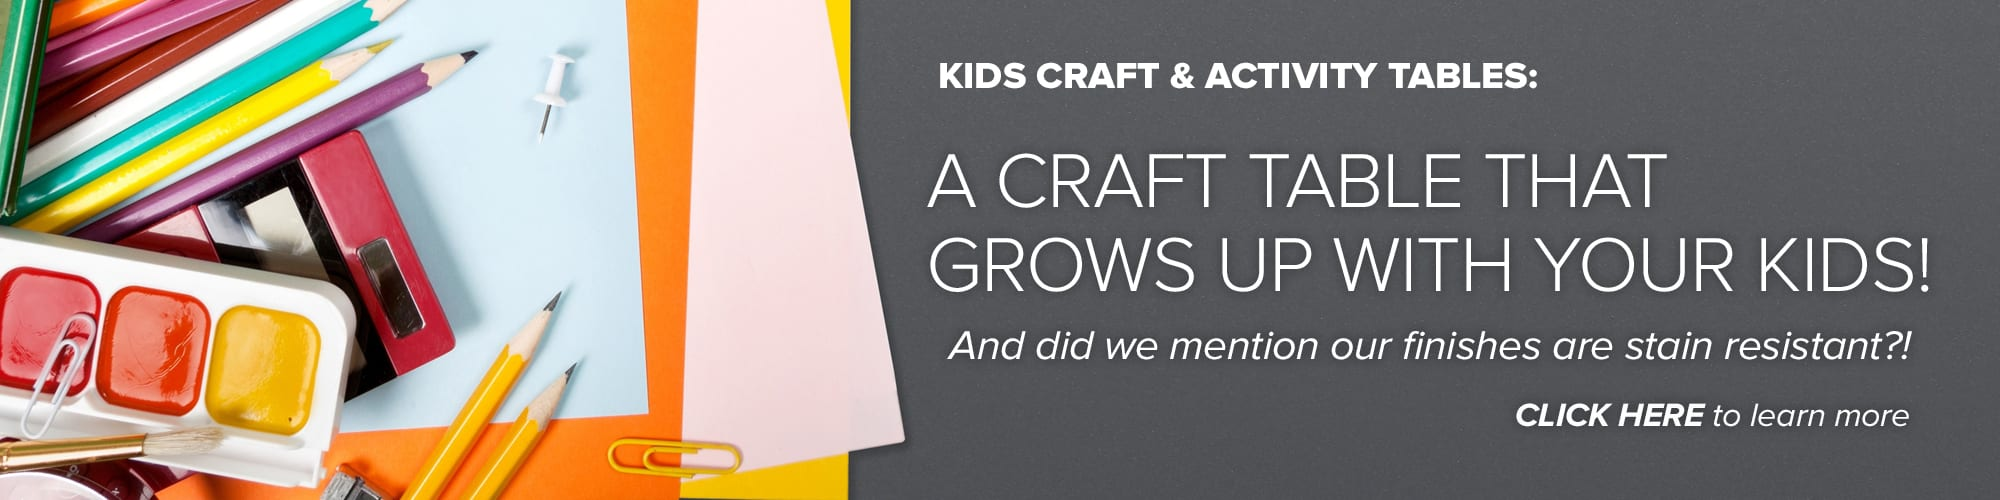 Kids Craft and Activity Table Banner